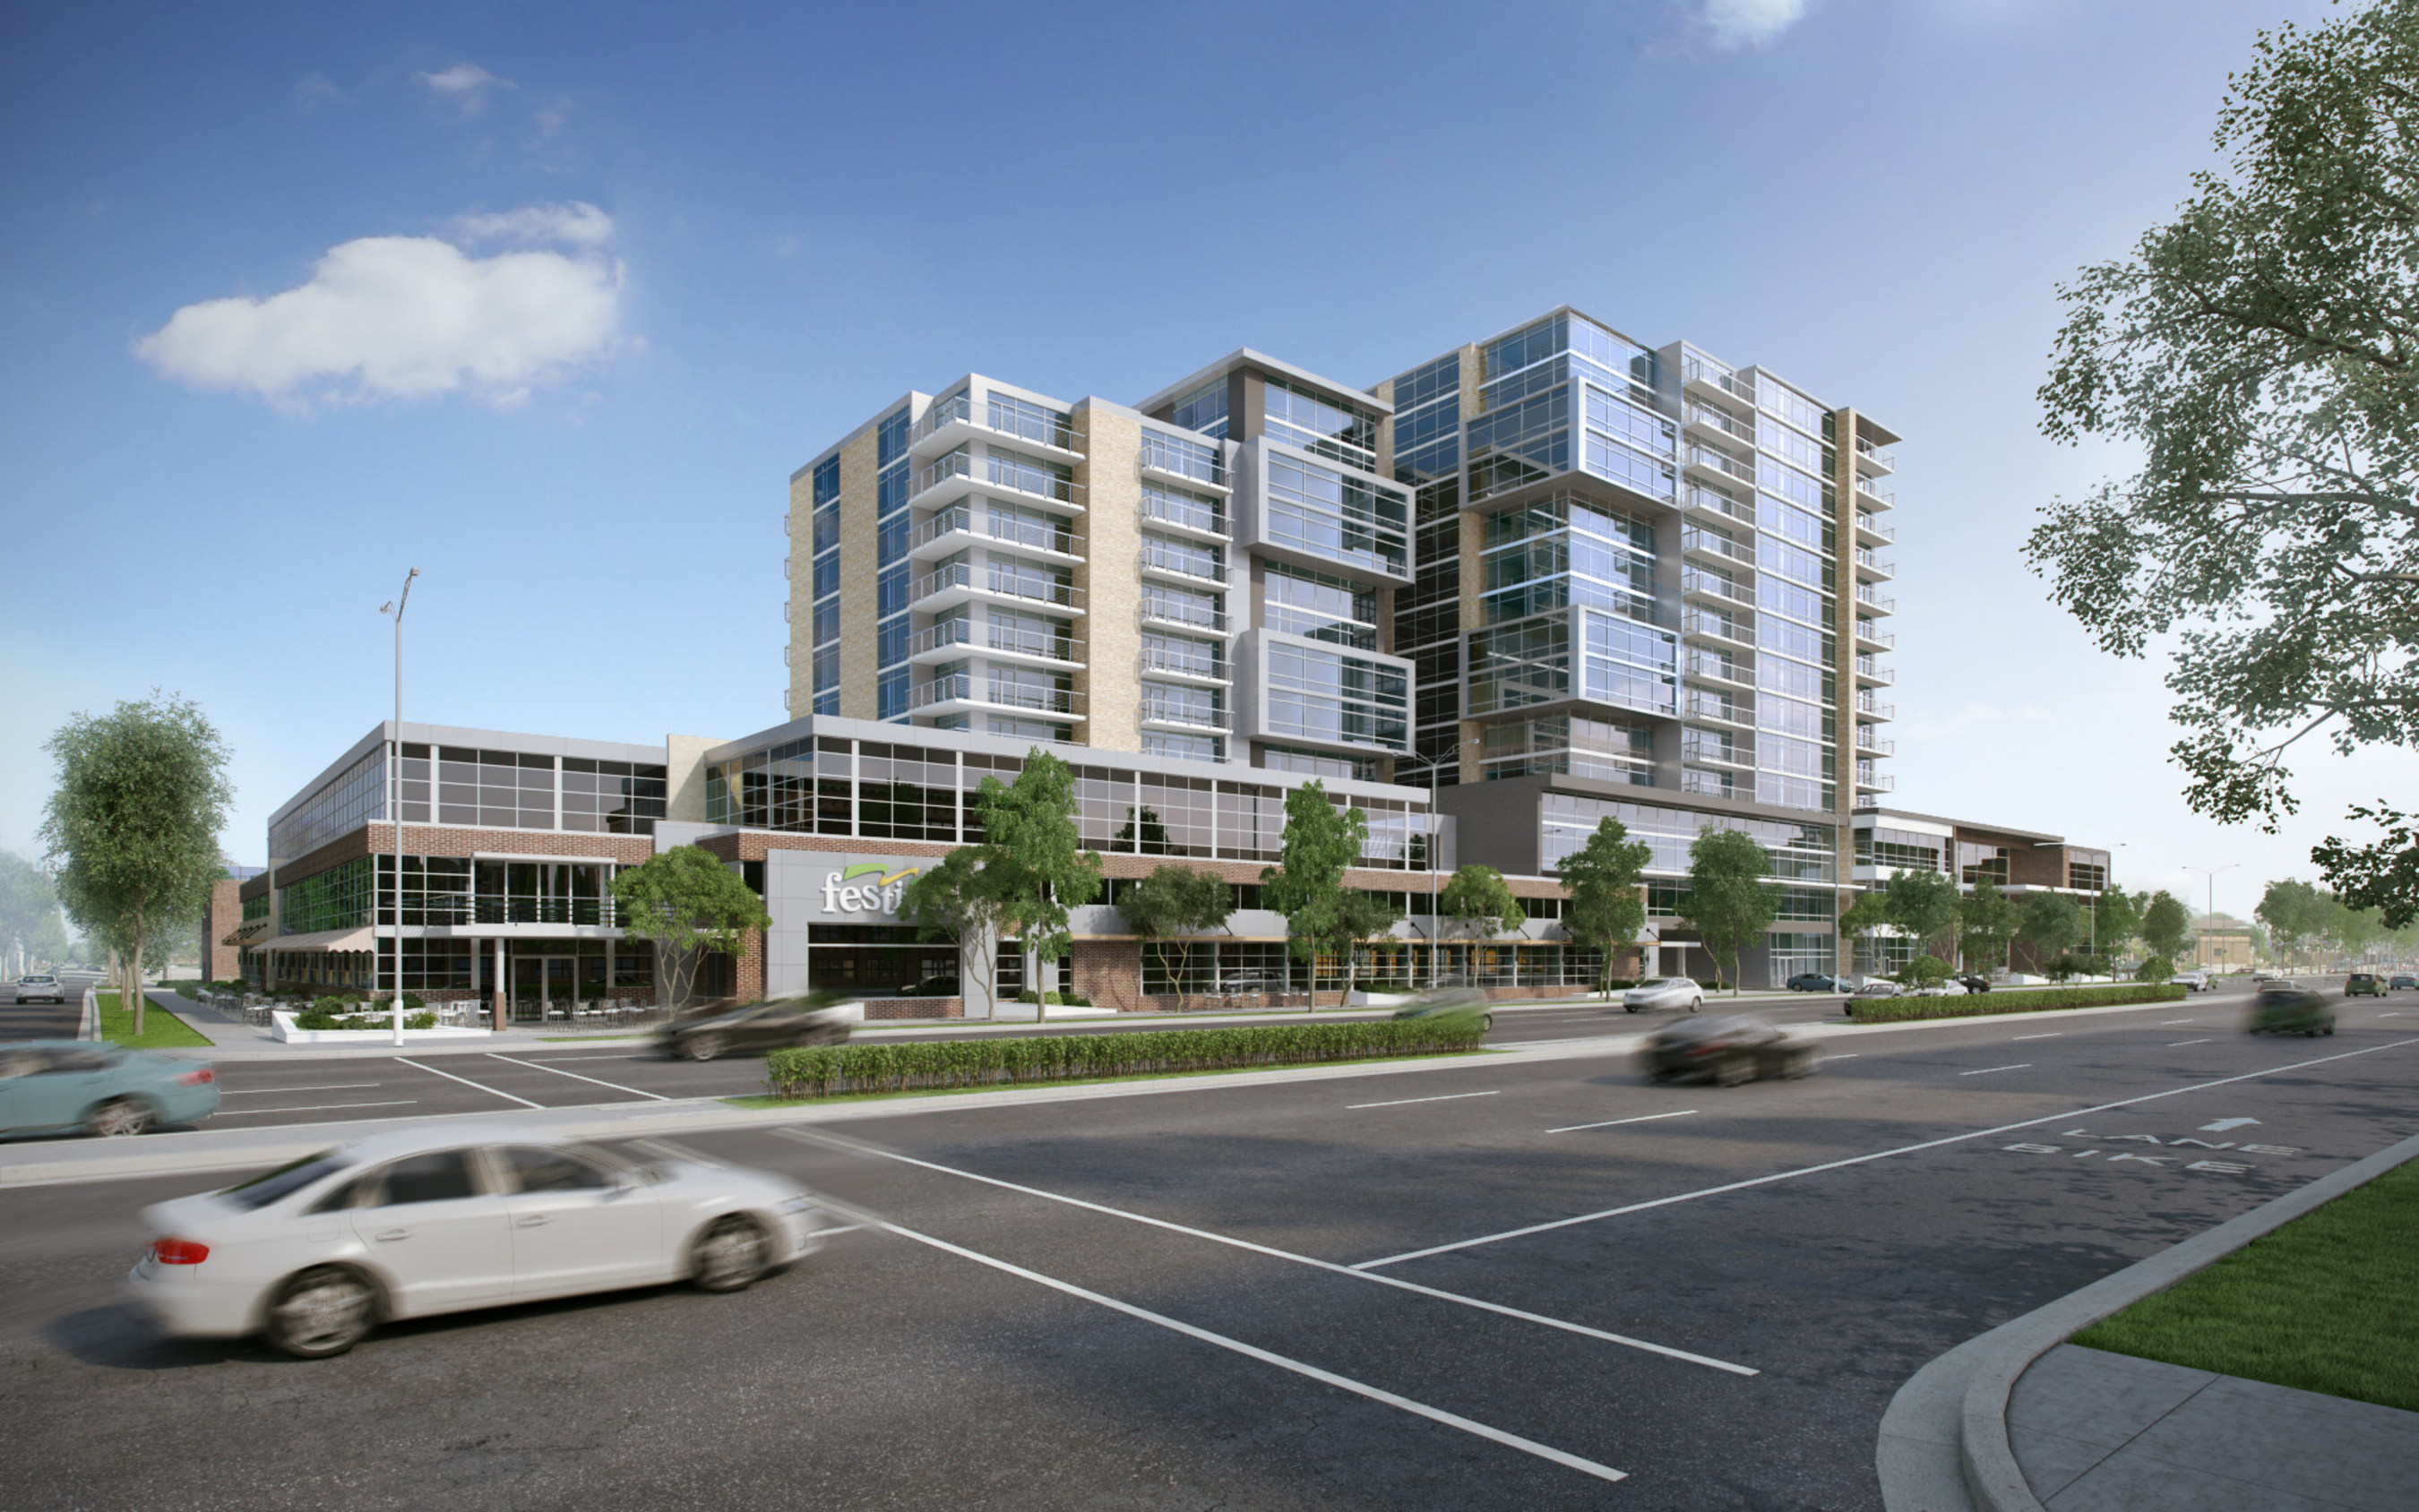 Associated Bank's new branch will be located on the ground level, far right in this rendering of the Galaxie Development